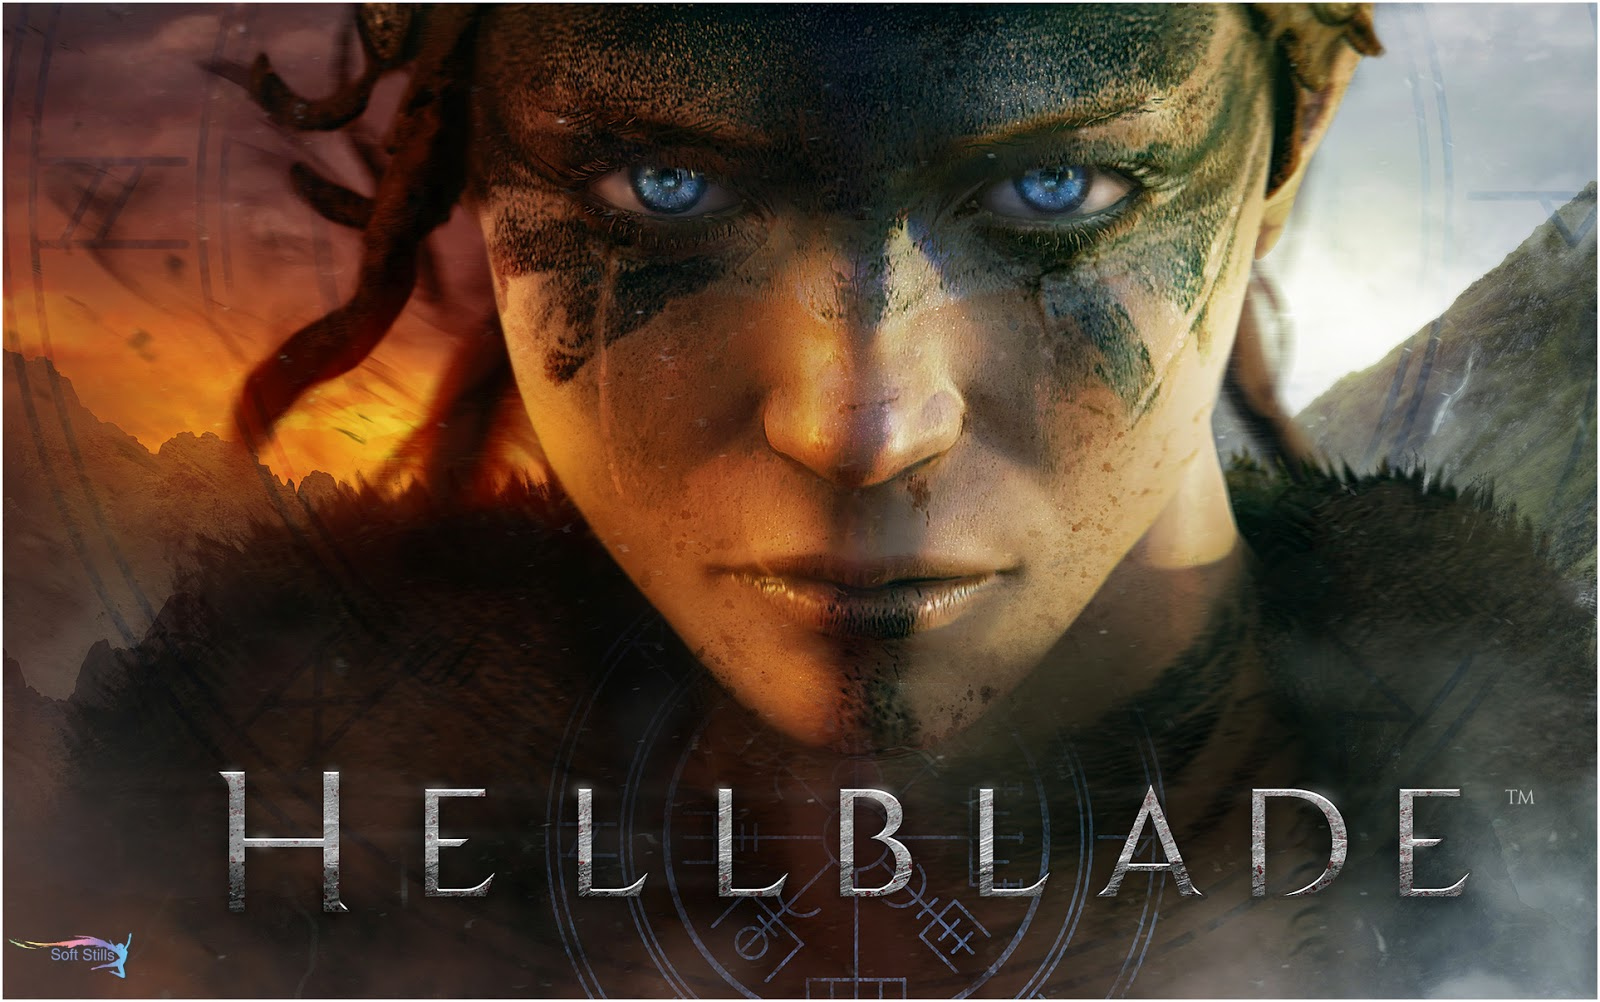 Download Hellblade PS4 Game HD & Widescreen Games Wallpaper